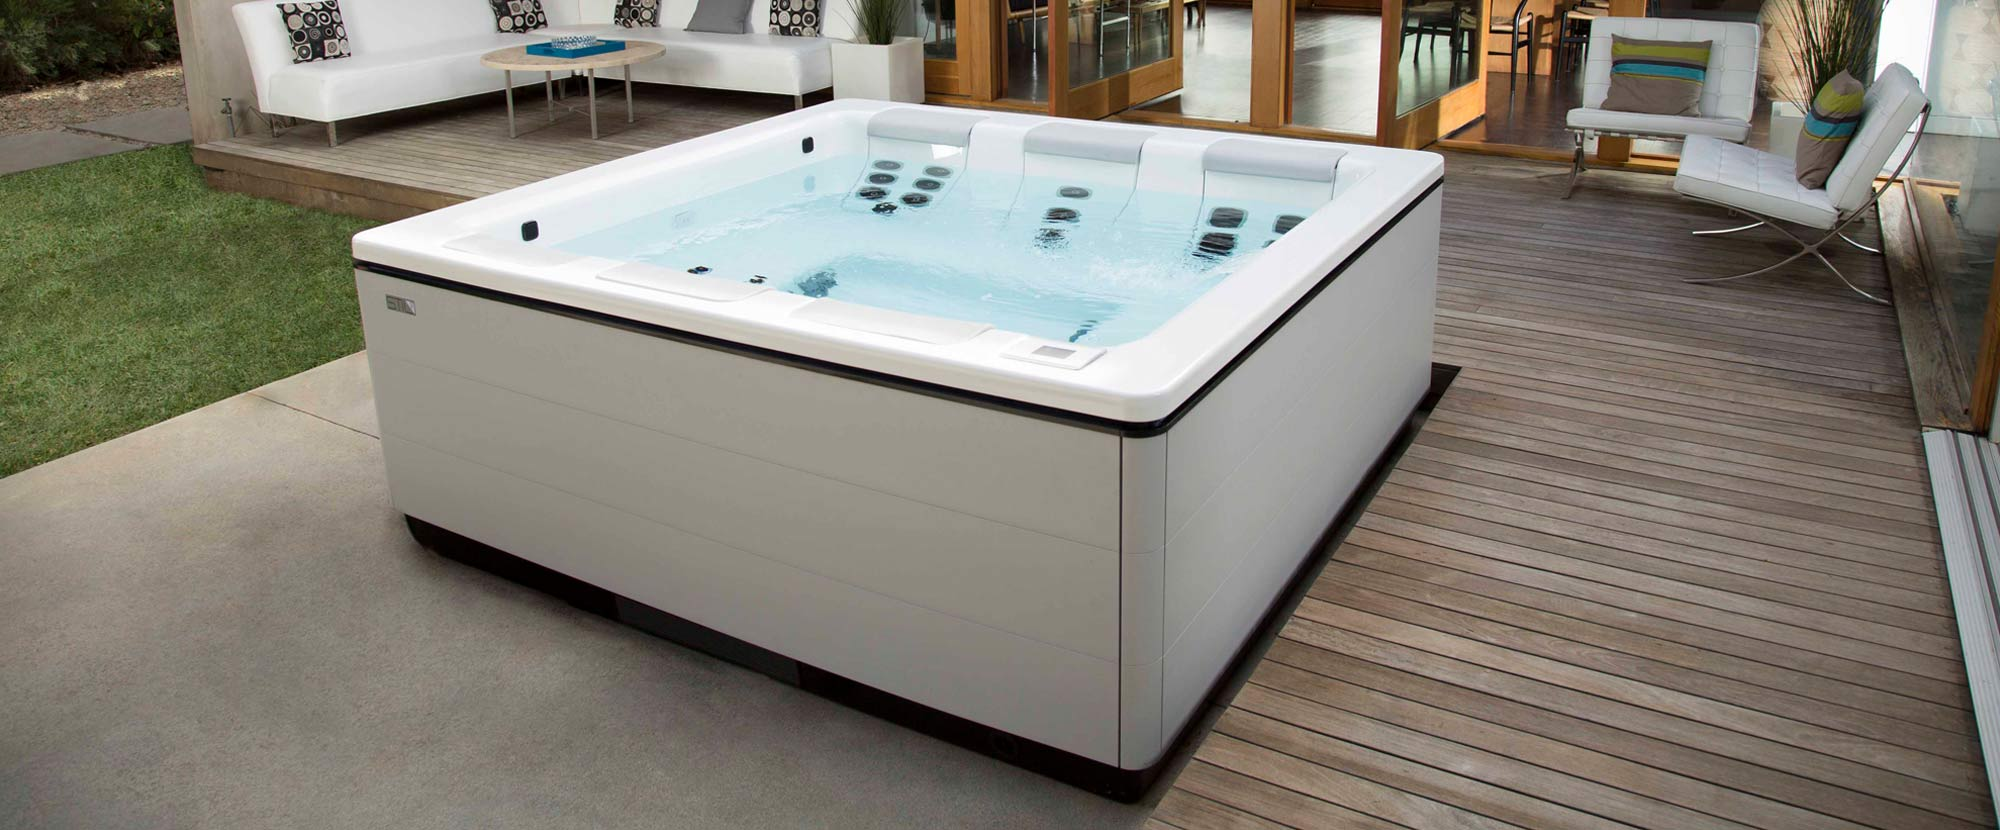 Warm Up Your Outdoor Leisure Space This Winter With A Bullfrog Spa From Leisure Zone<br/>With Our Winter Clearance Sale